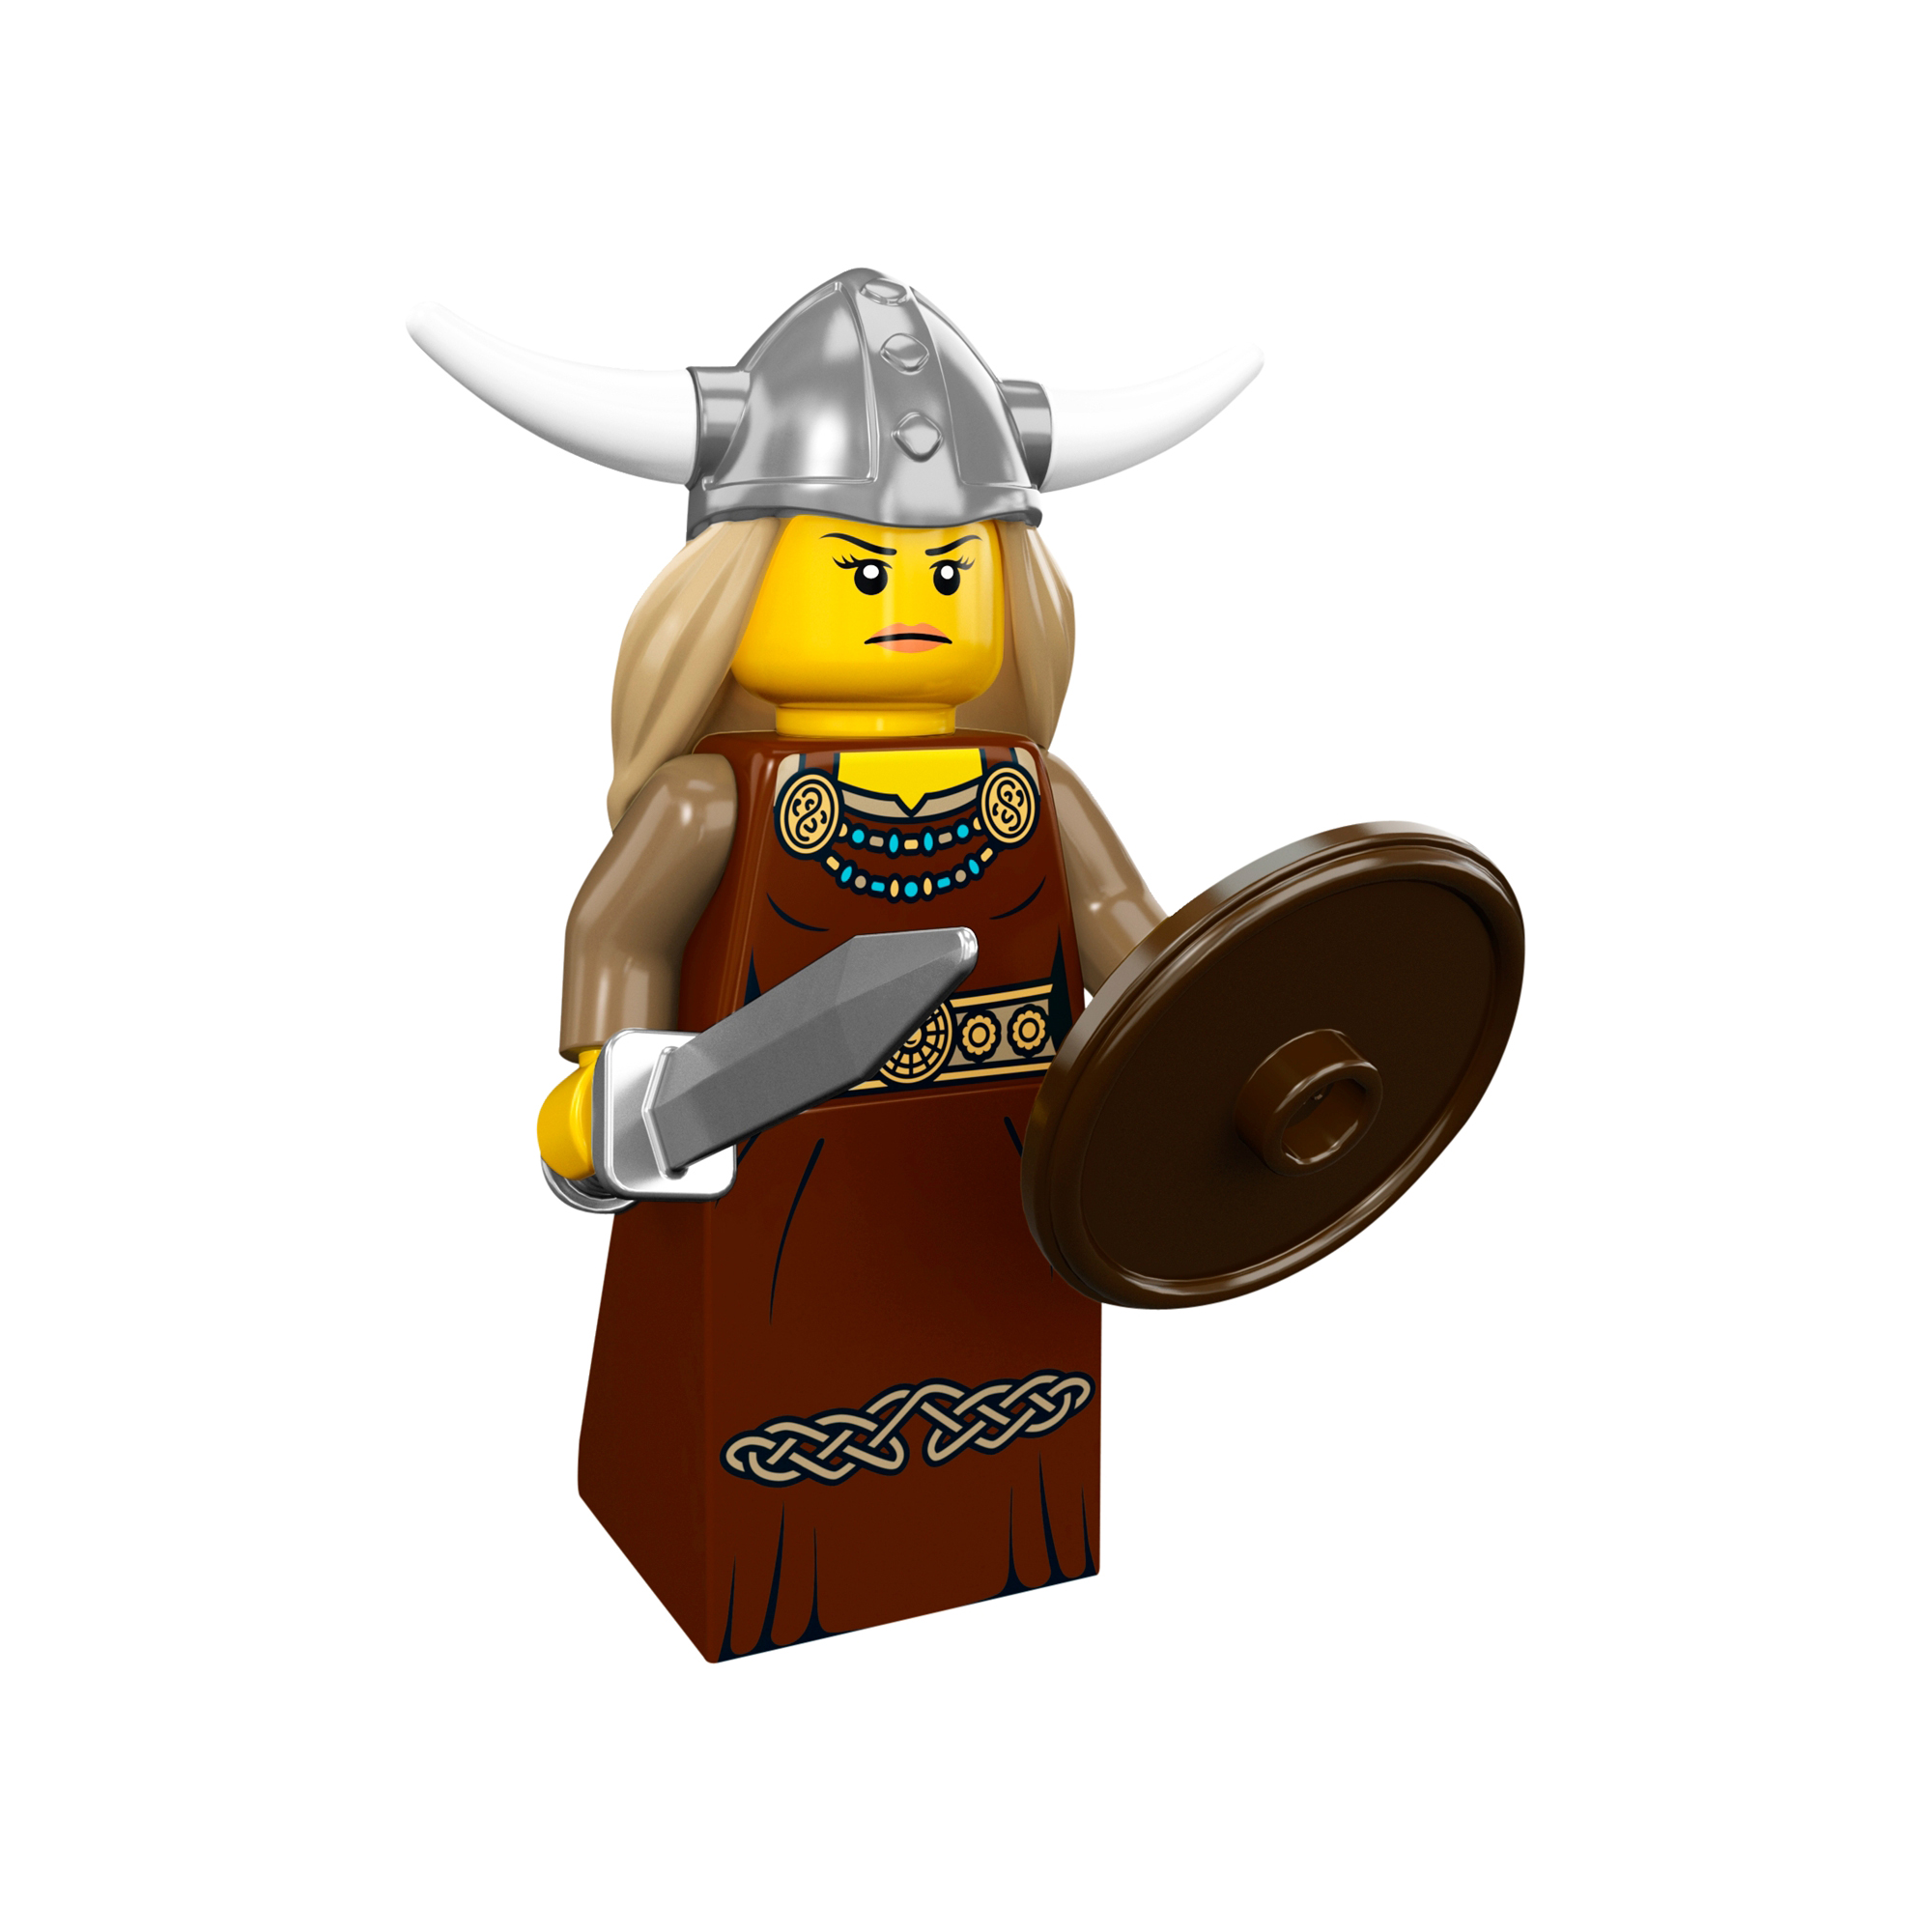 u1_8831_viking_woman_1.jpg